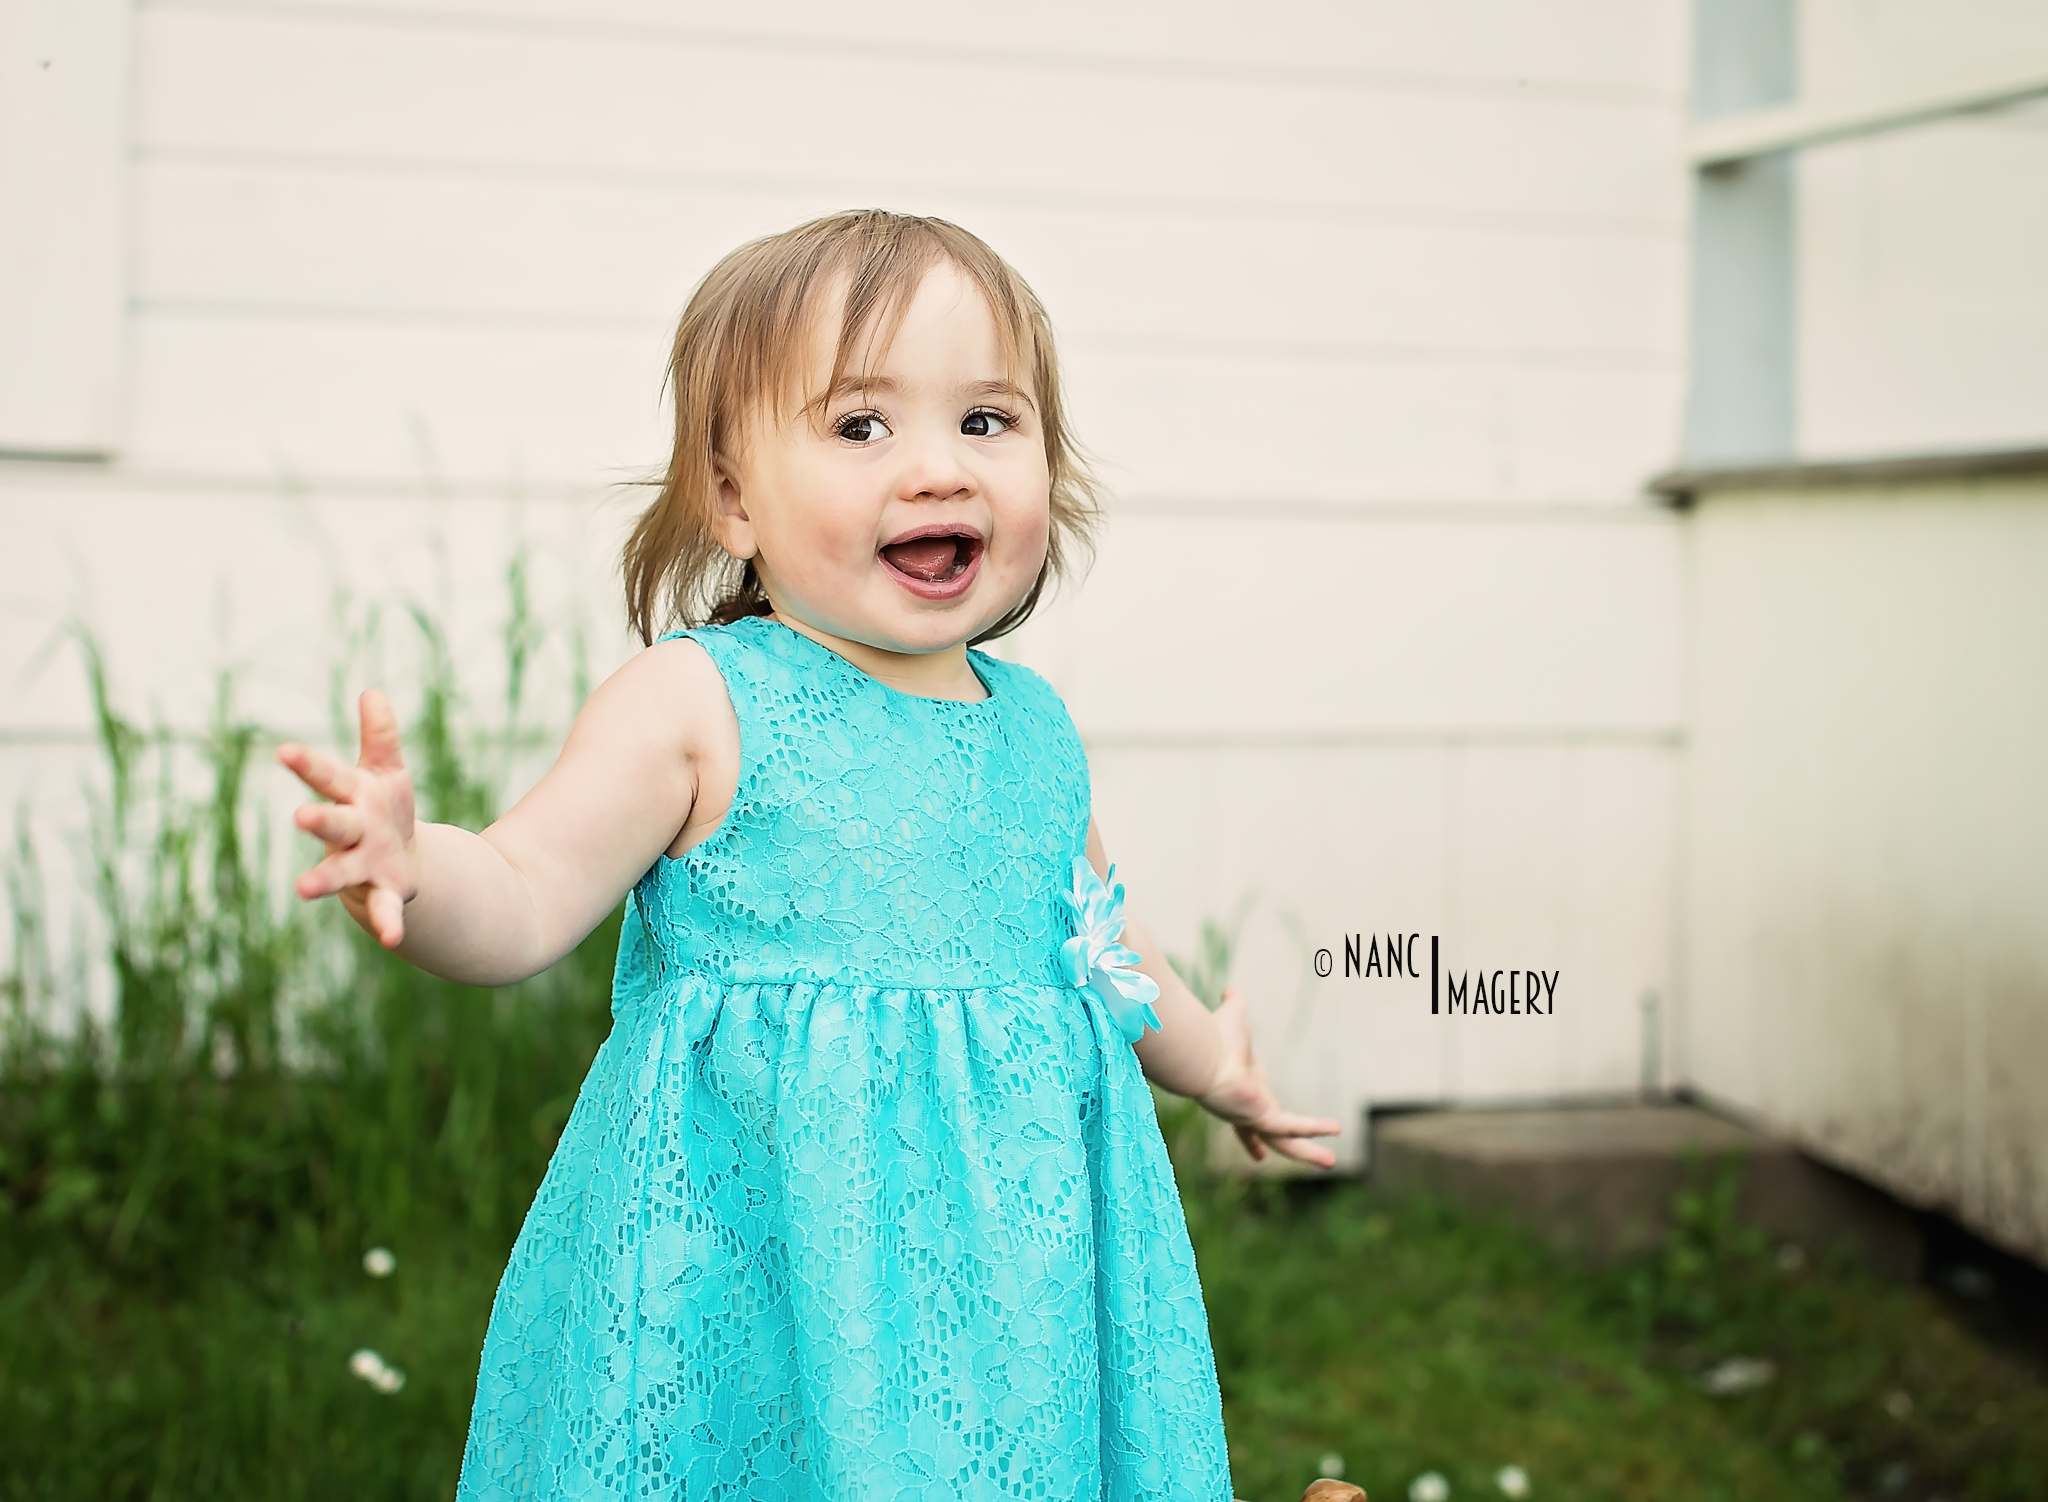 Miss A loves playing Pee-A-Boo! Playing Peek-A Boo totally brought out her personality! She also loves the camera.